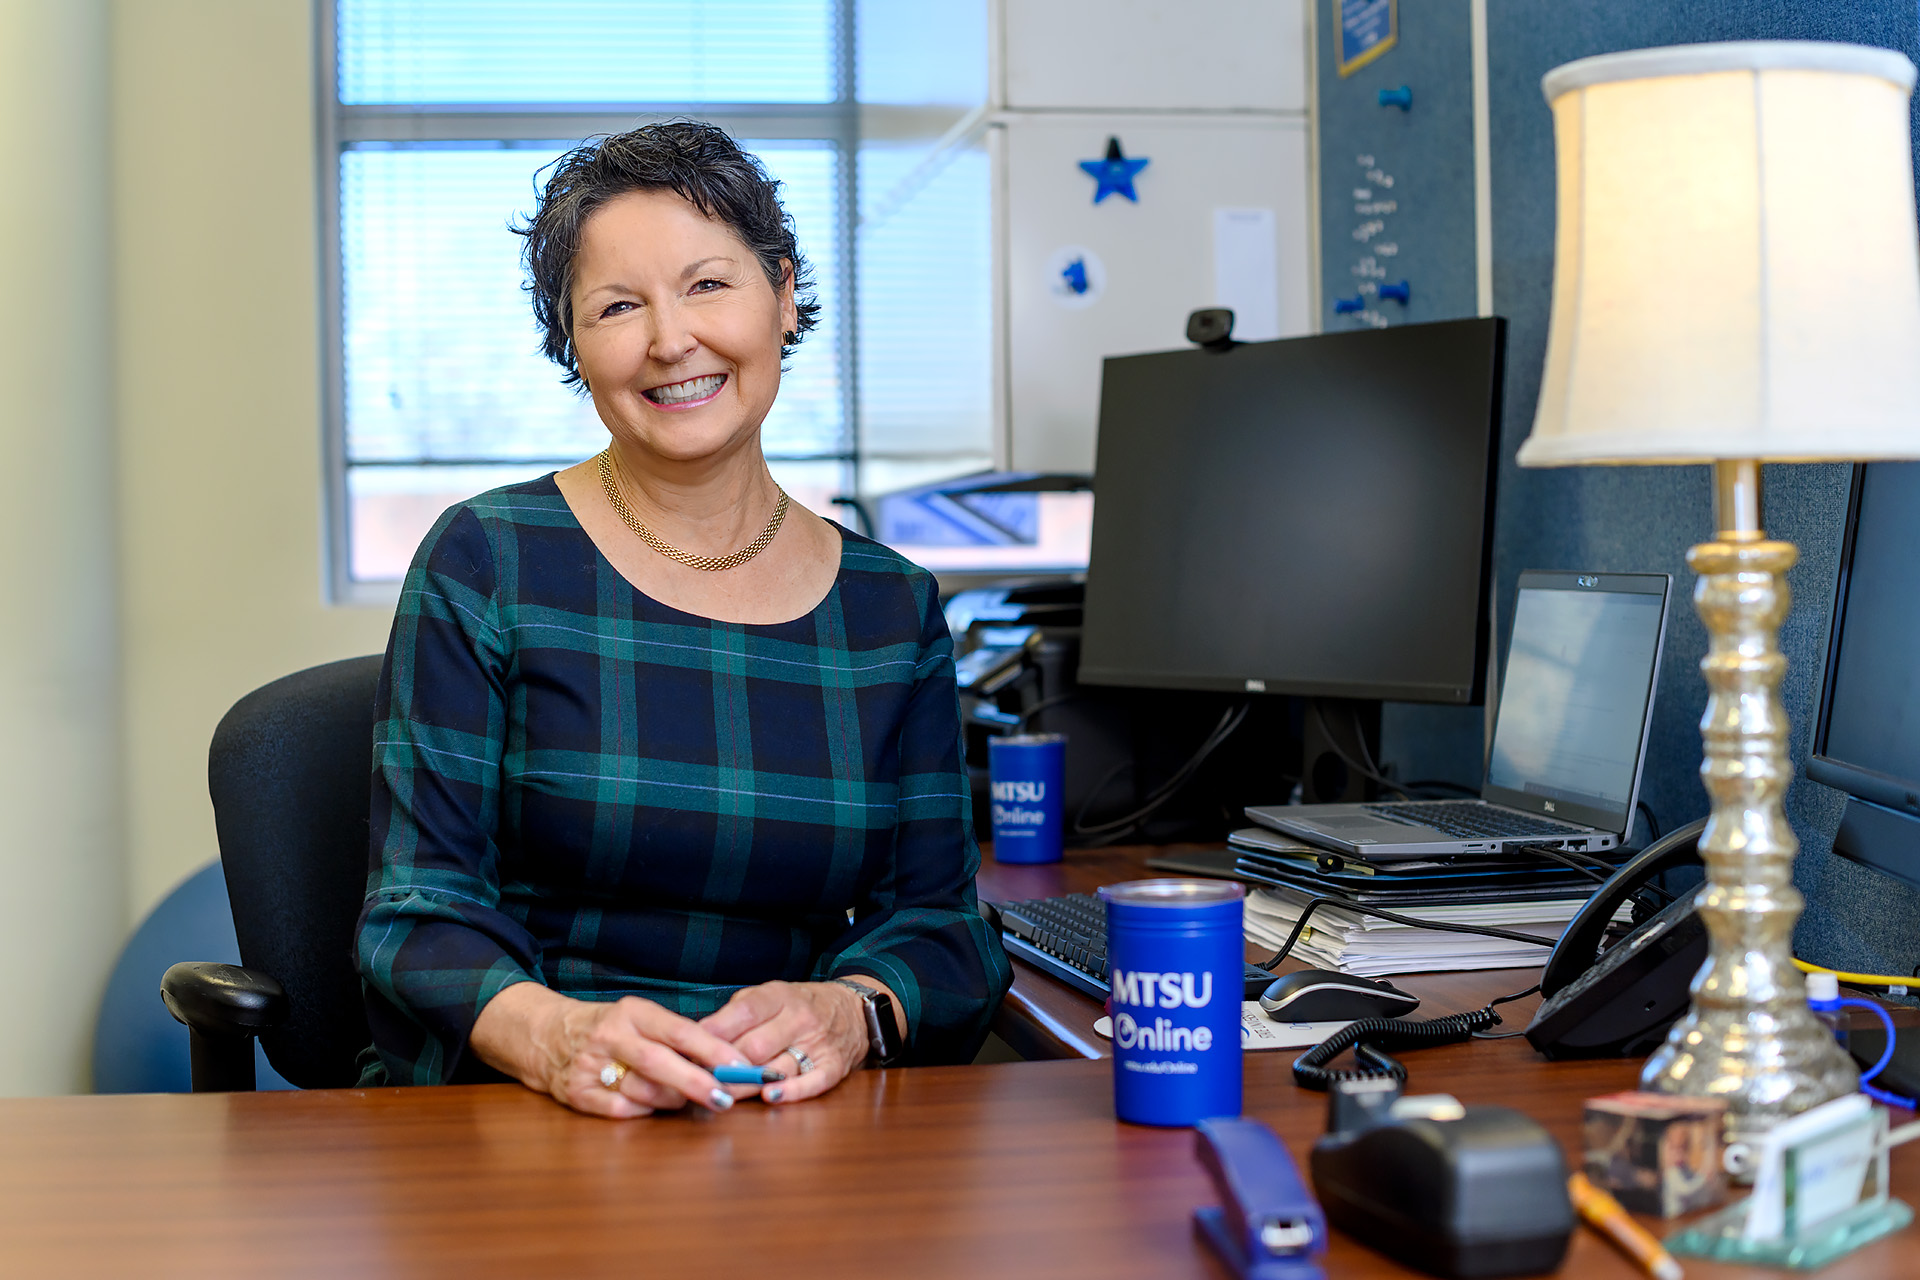 Cindy Adams, University College Administration, Director-MTSU Online Learning faculty profile at the MEC building. (Photo: J. Intintoli)